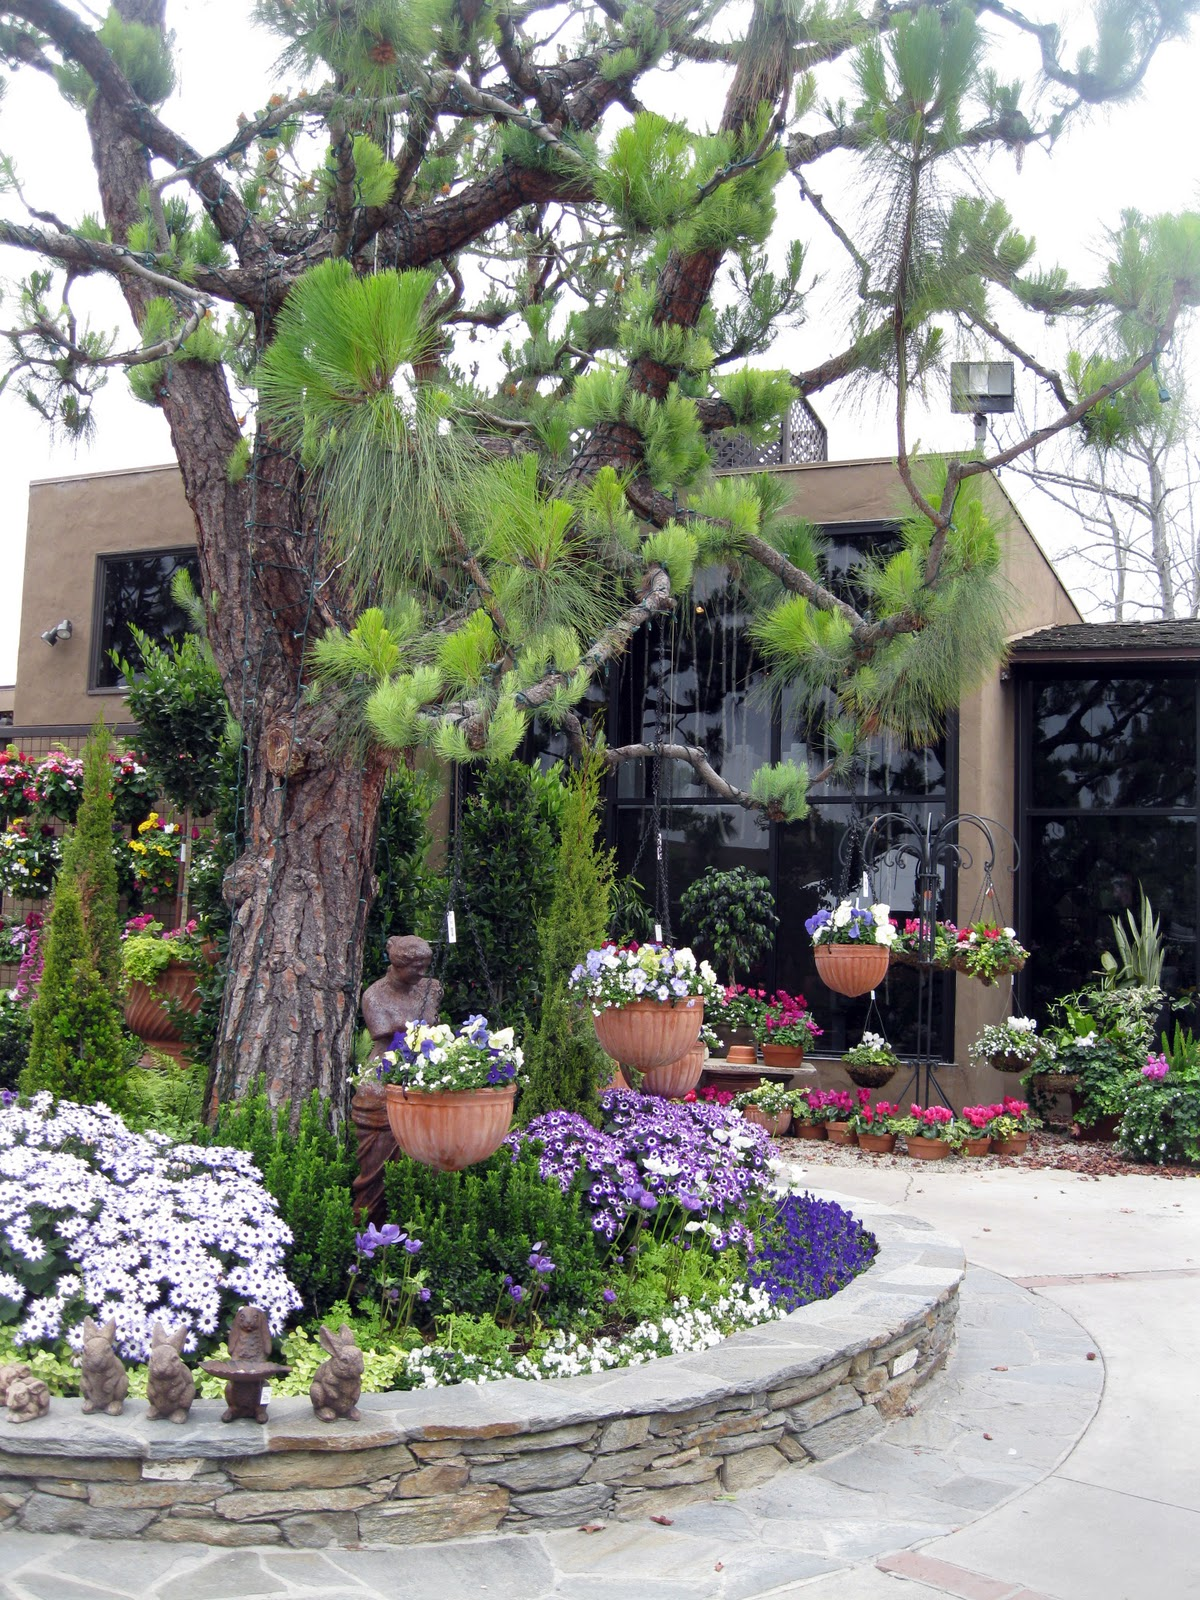 C.B.I.D. HOME DECOR and DESIGN: GARDENING: Spring at Rogers Gardens, Newport Beach